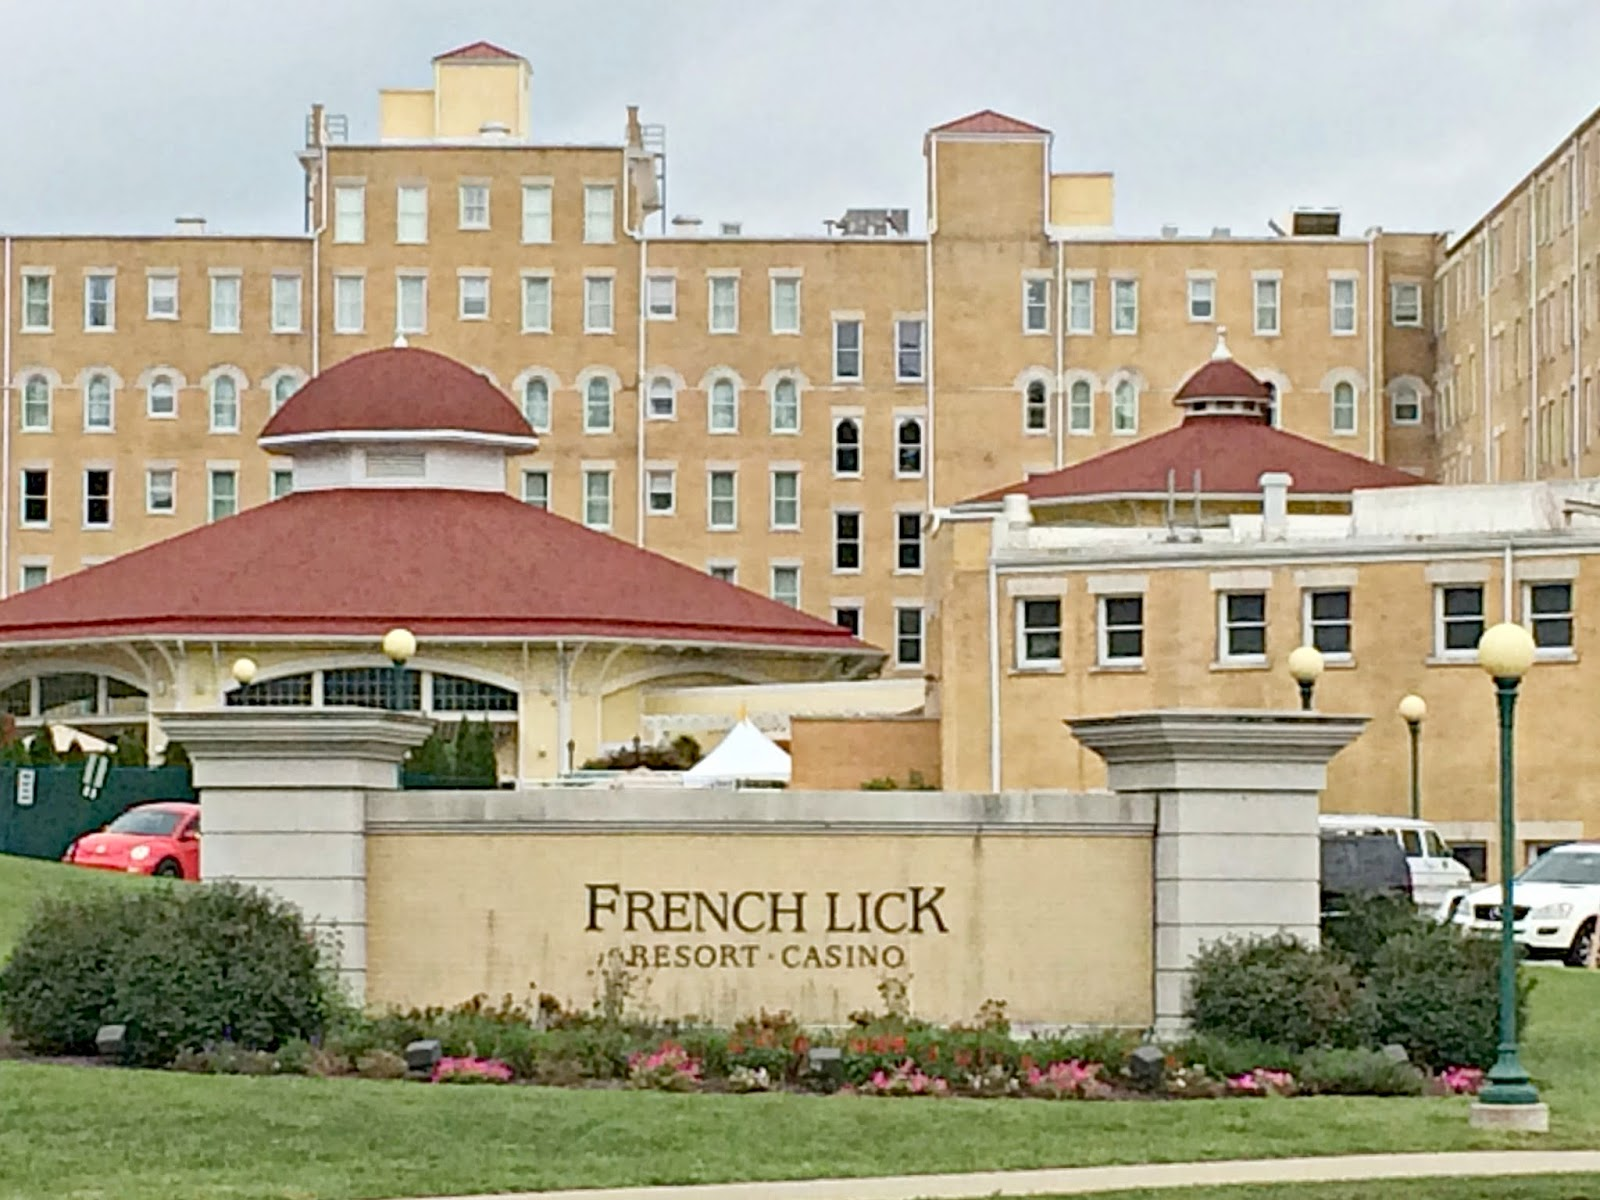 French lick resort and casino how to casino bus trip